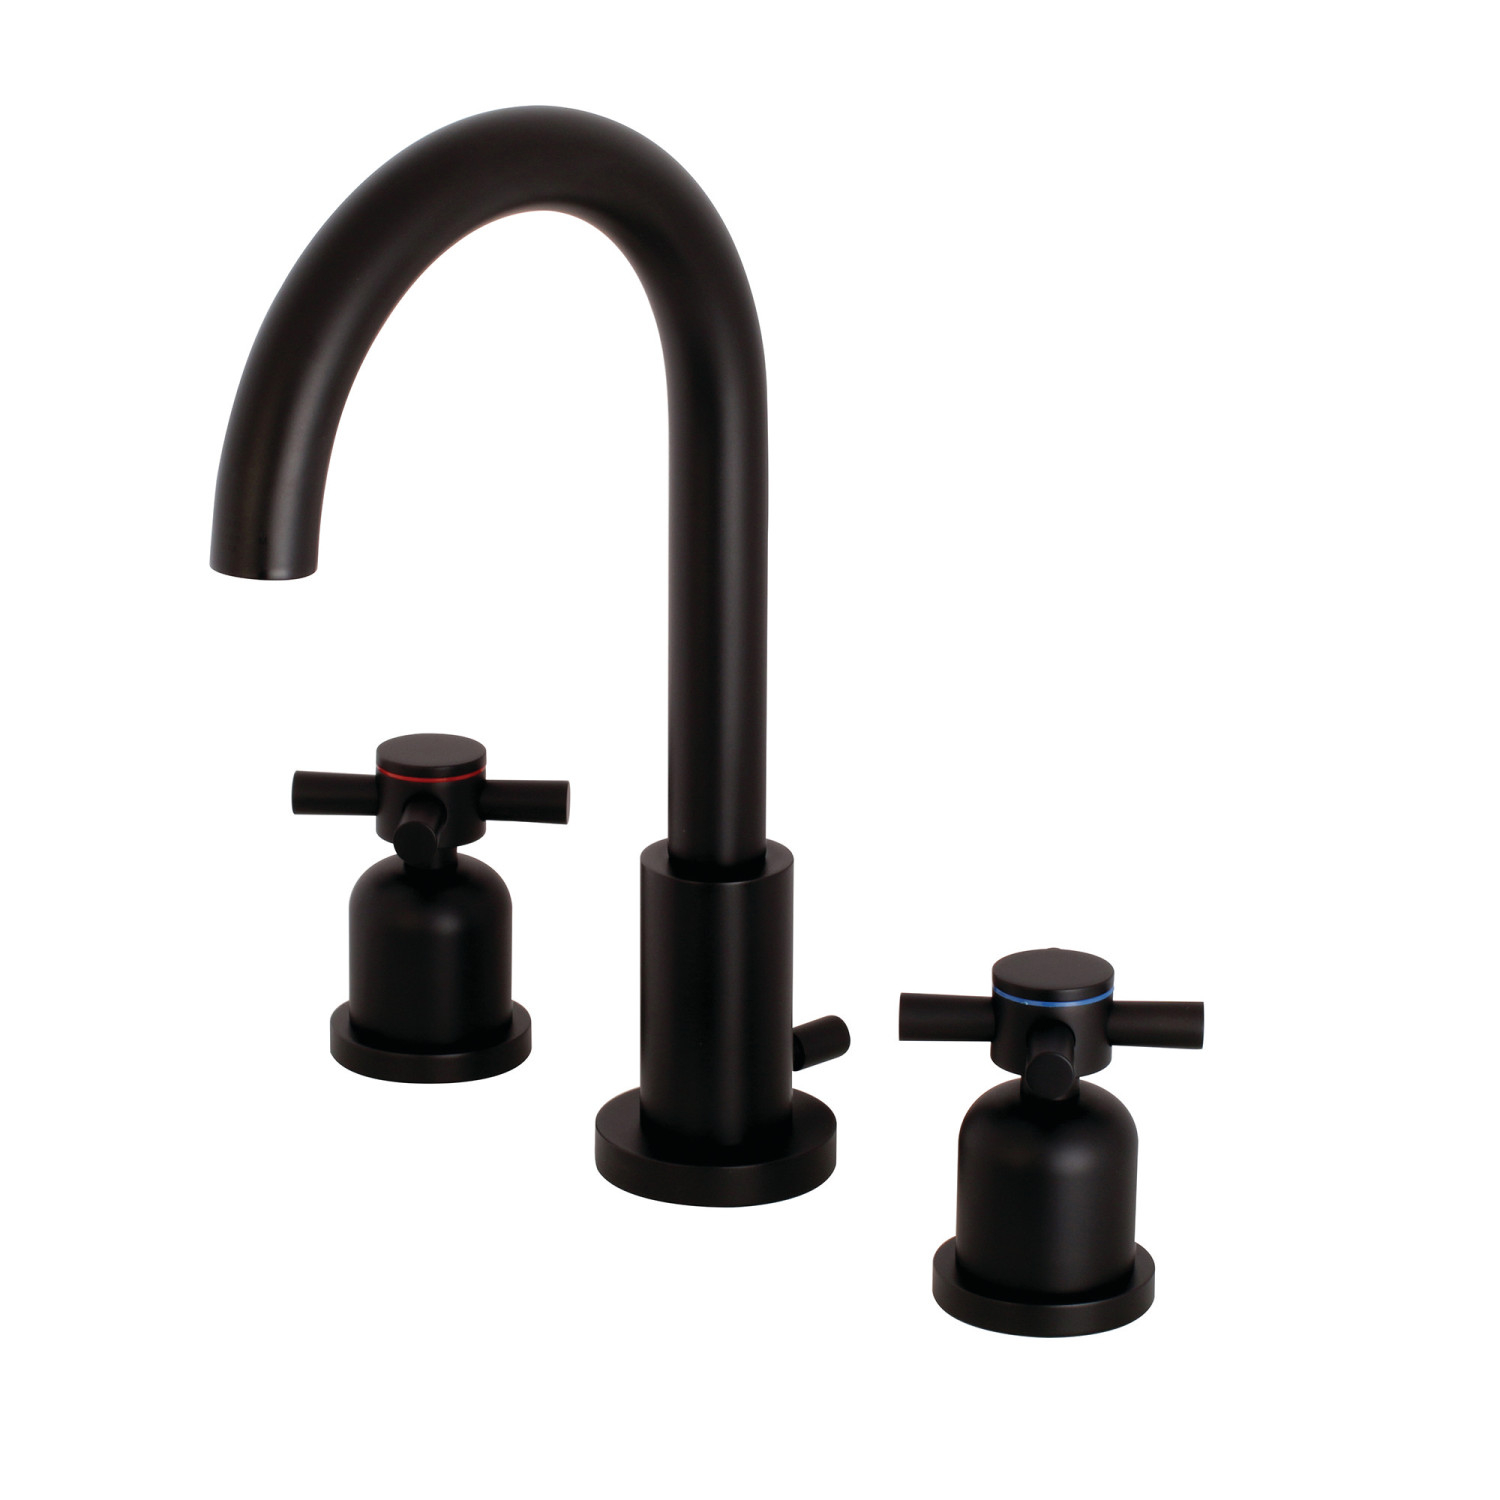 Fauceture Fsc8920dx Concord Widespread Bathroom Faucet Matte Black in dimensions 1500 X 1500